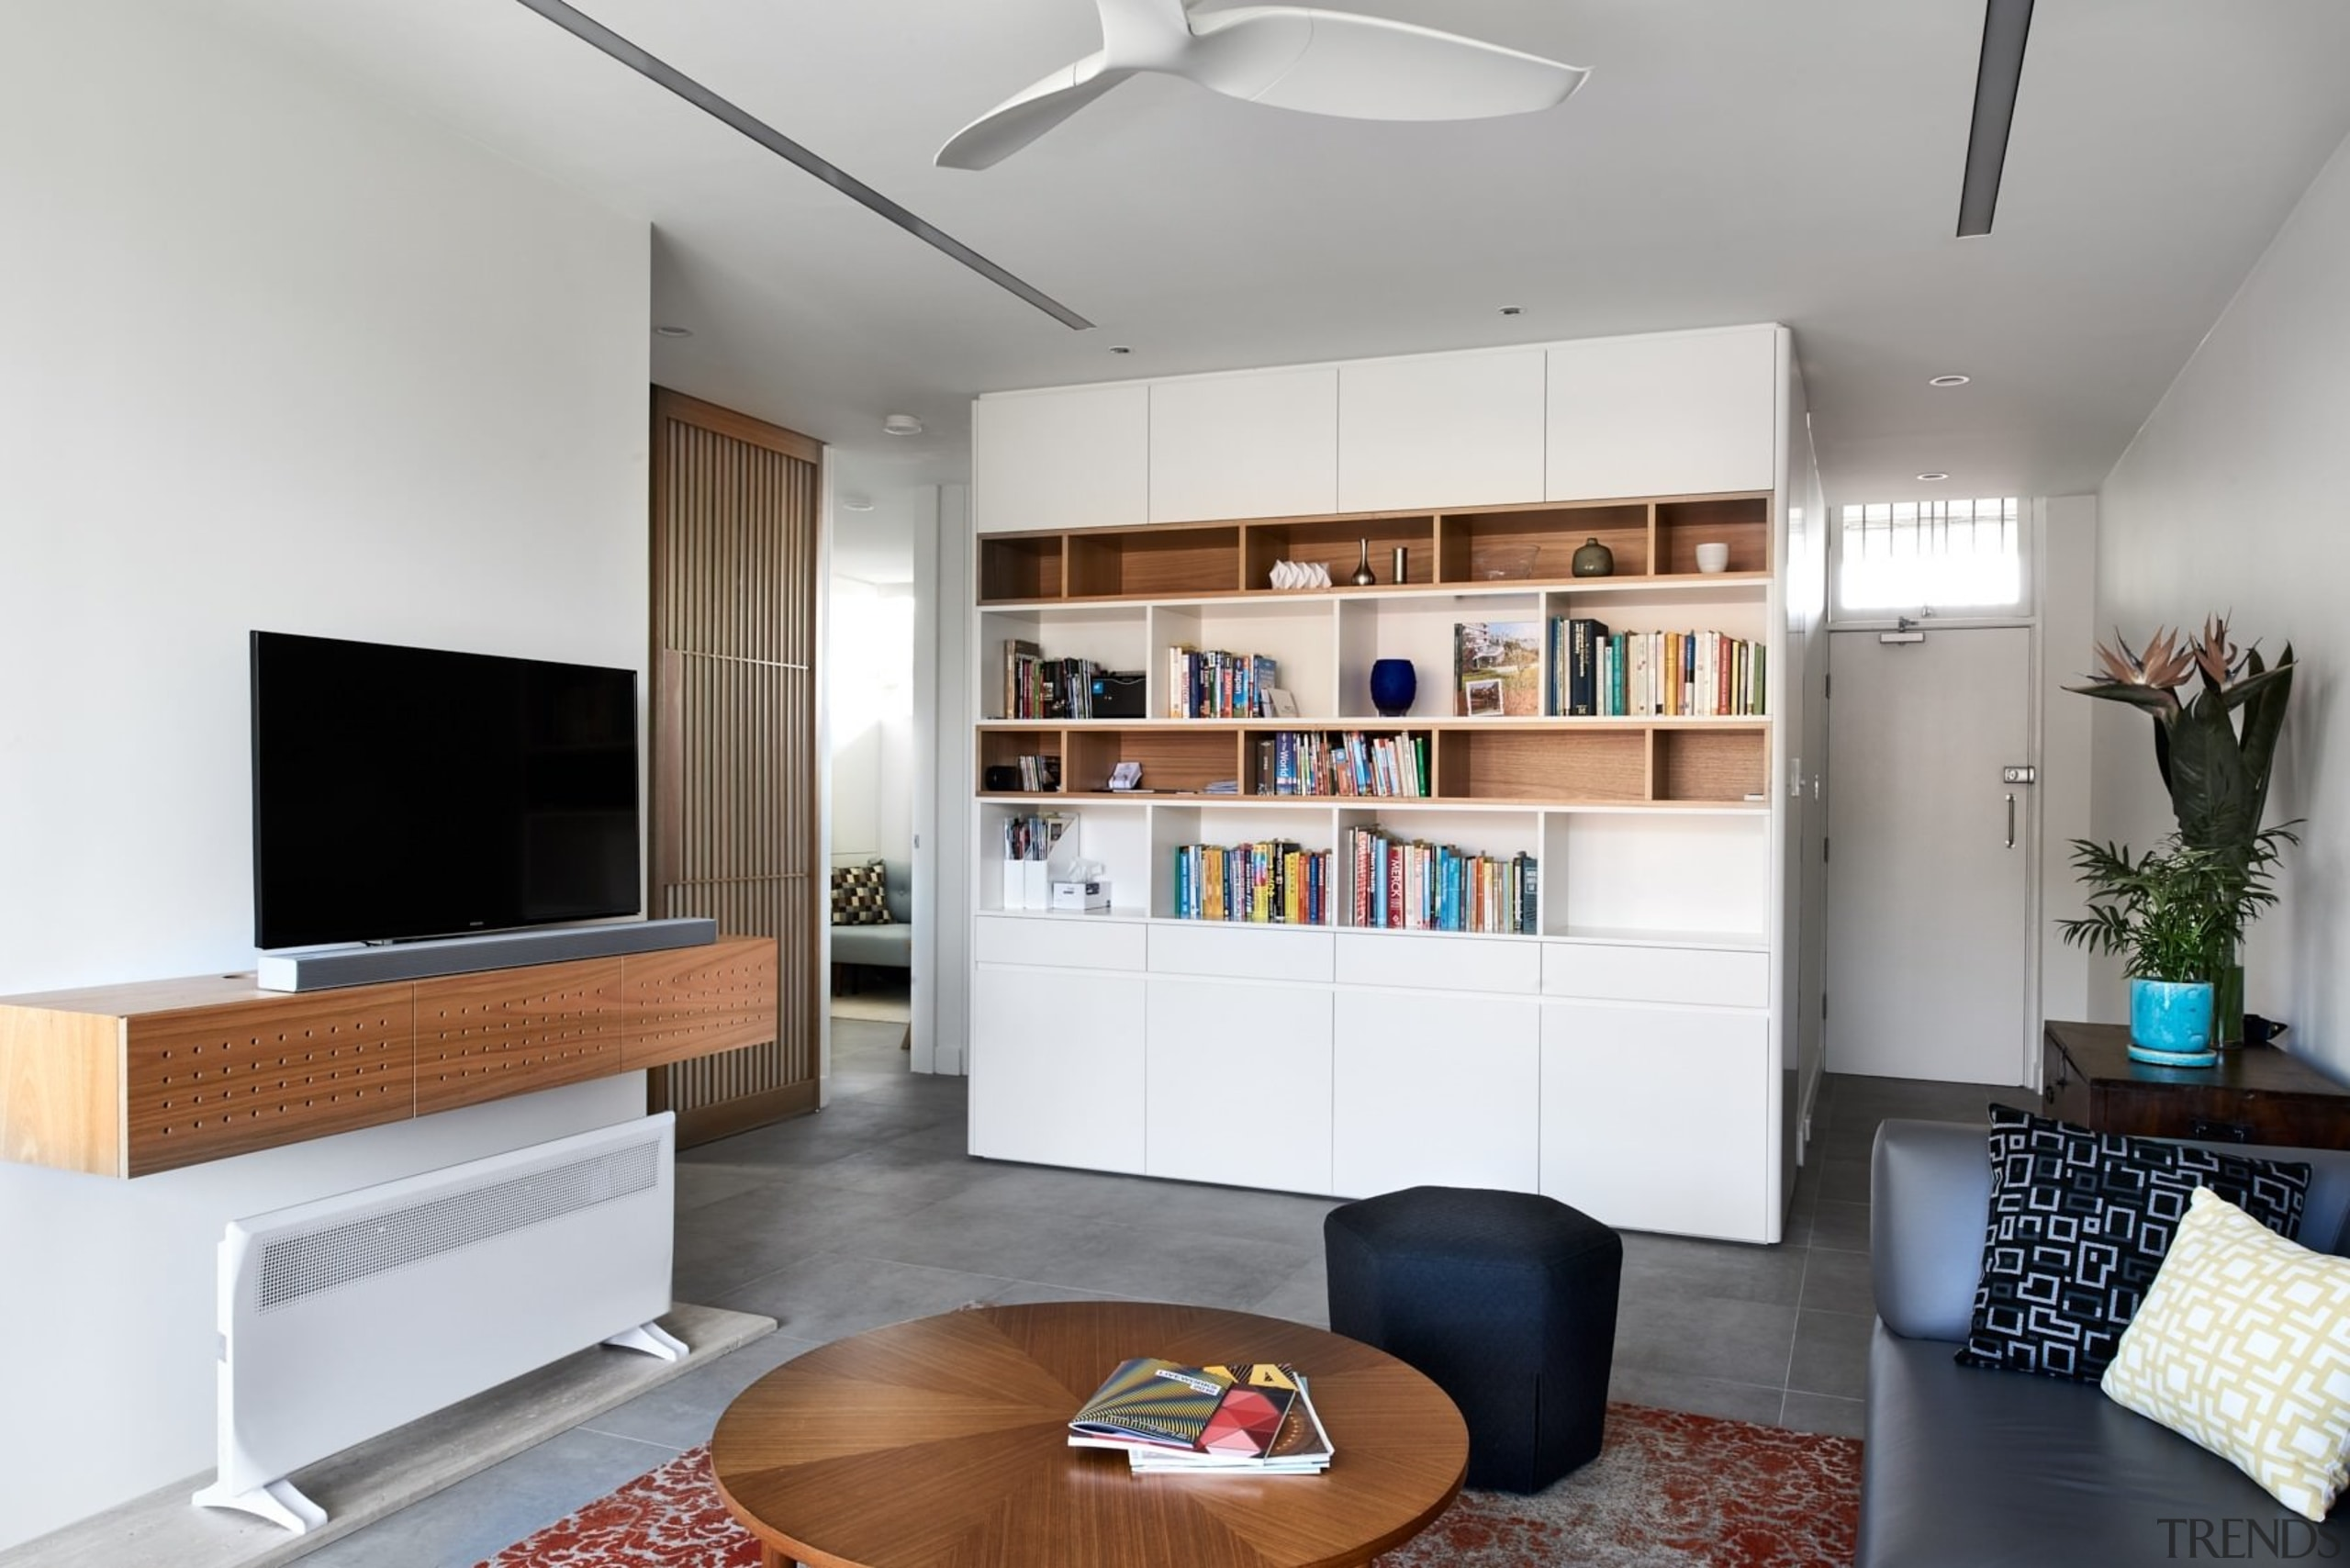 The living room feels spacious thanks to the furniture, interior design, interior designer, living room, room, shelving, gray